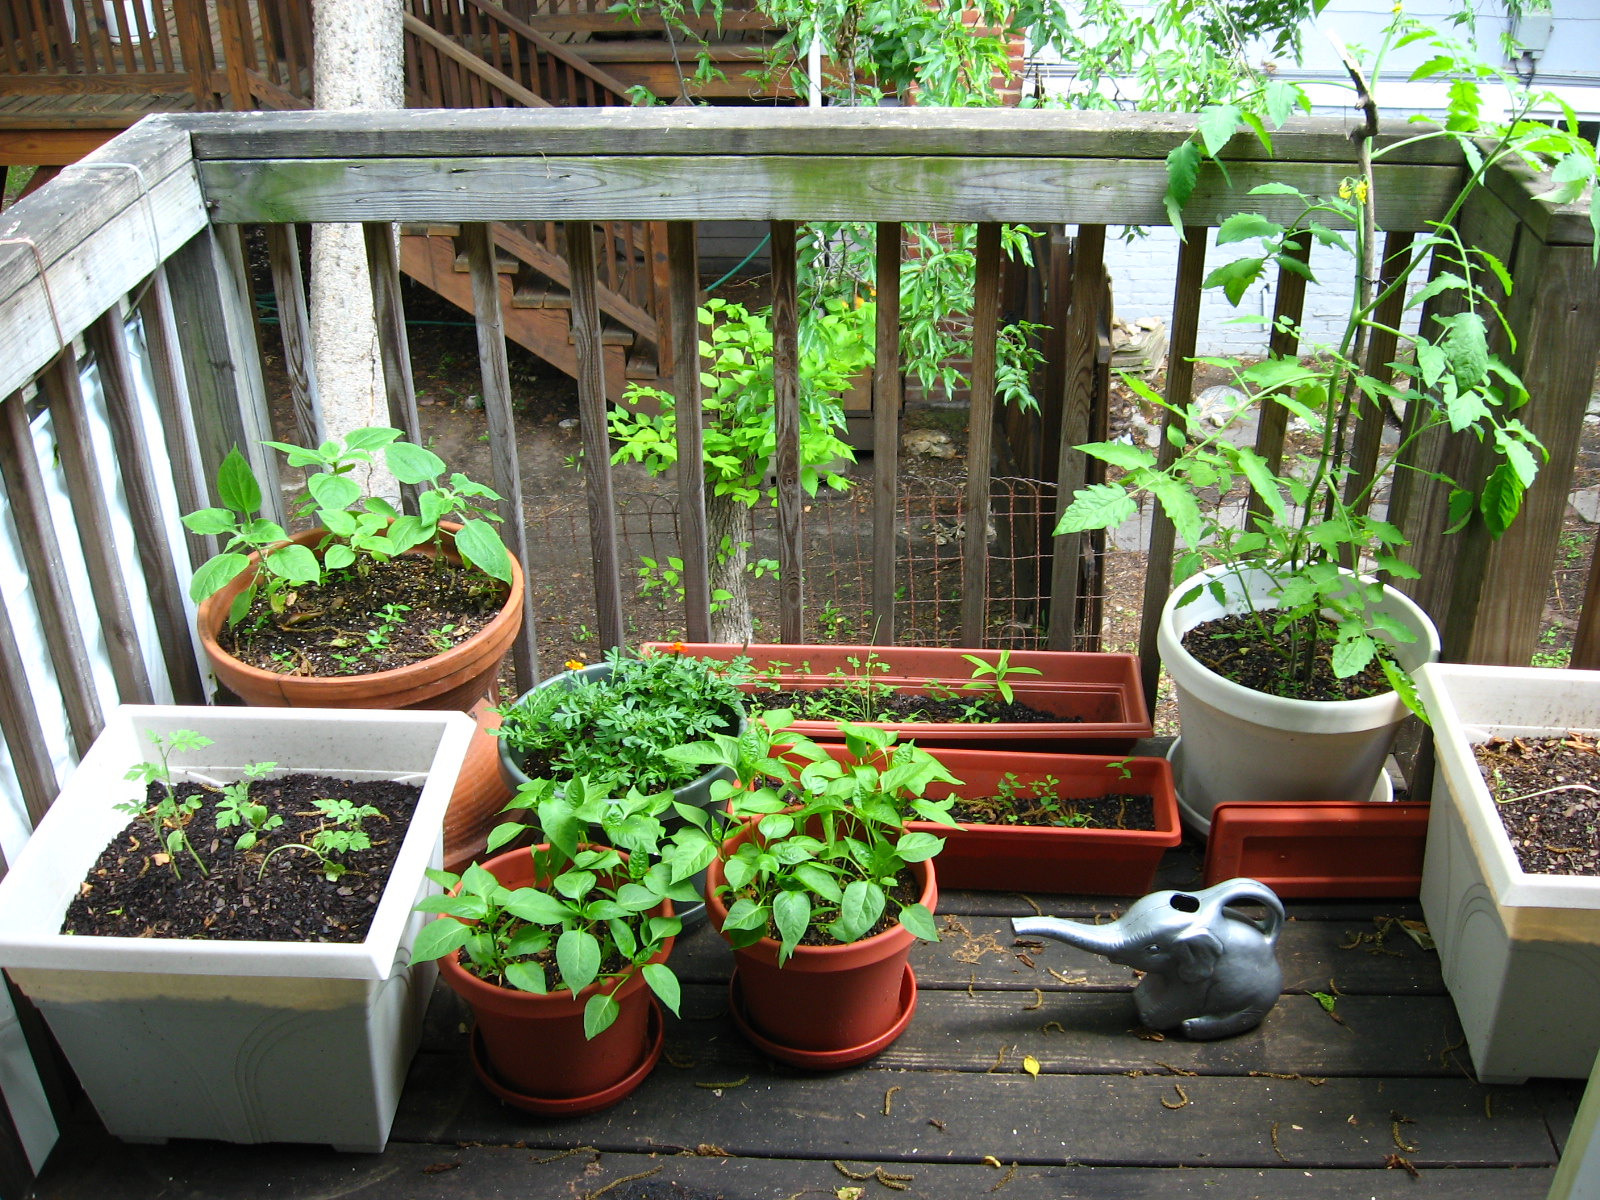 Don't let lack of room discourage you from gardening